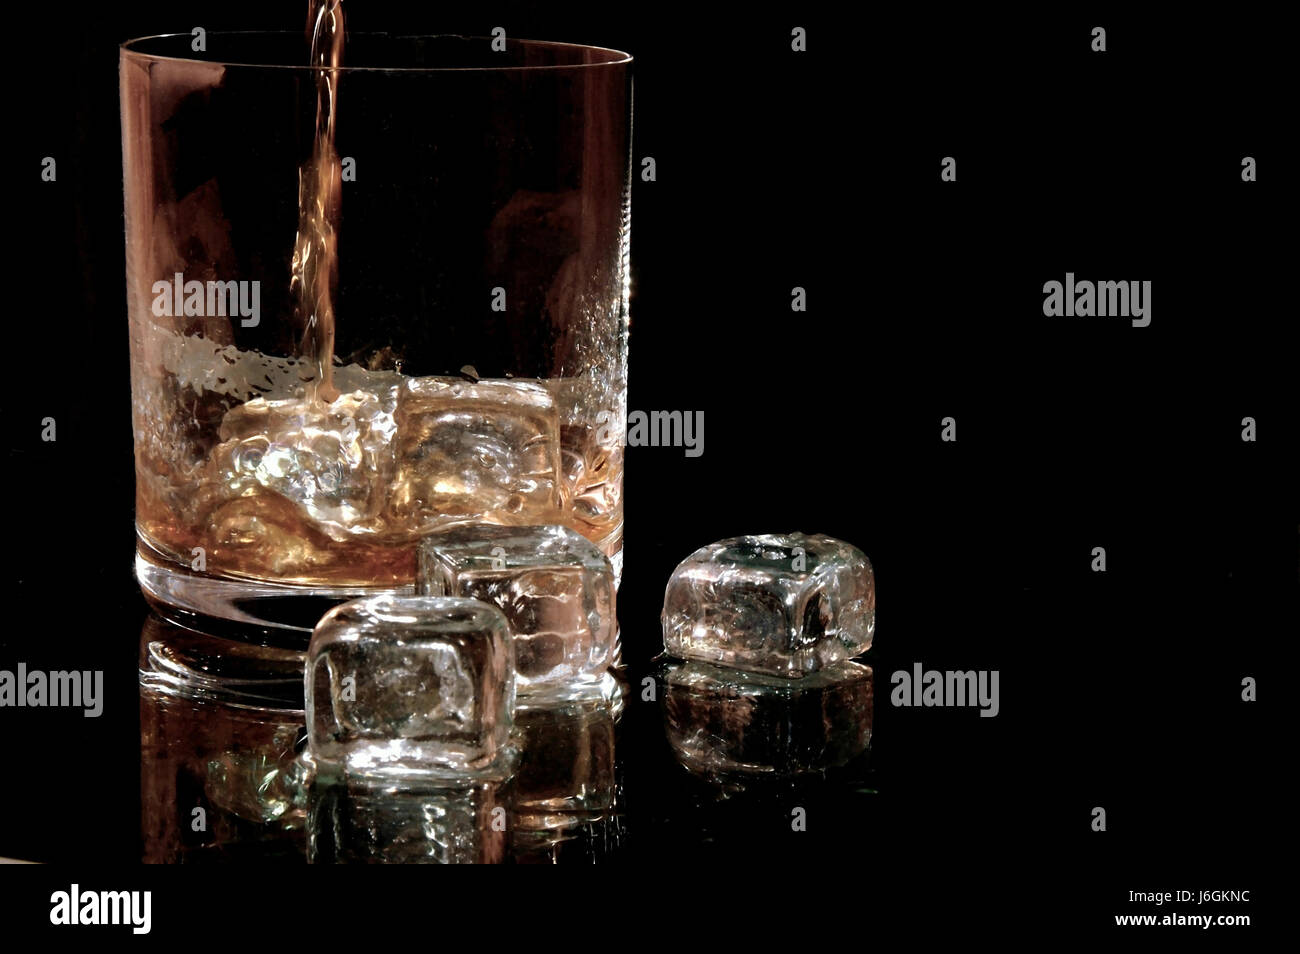 Drink Liquid Flow Alcohol Ceramic Tiles Mould Whiskey Motion Stock